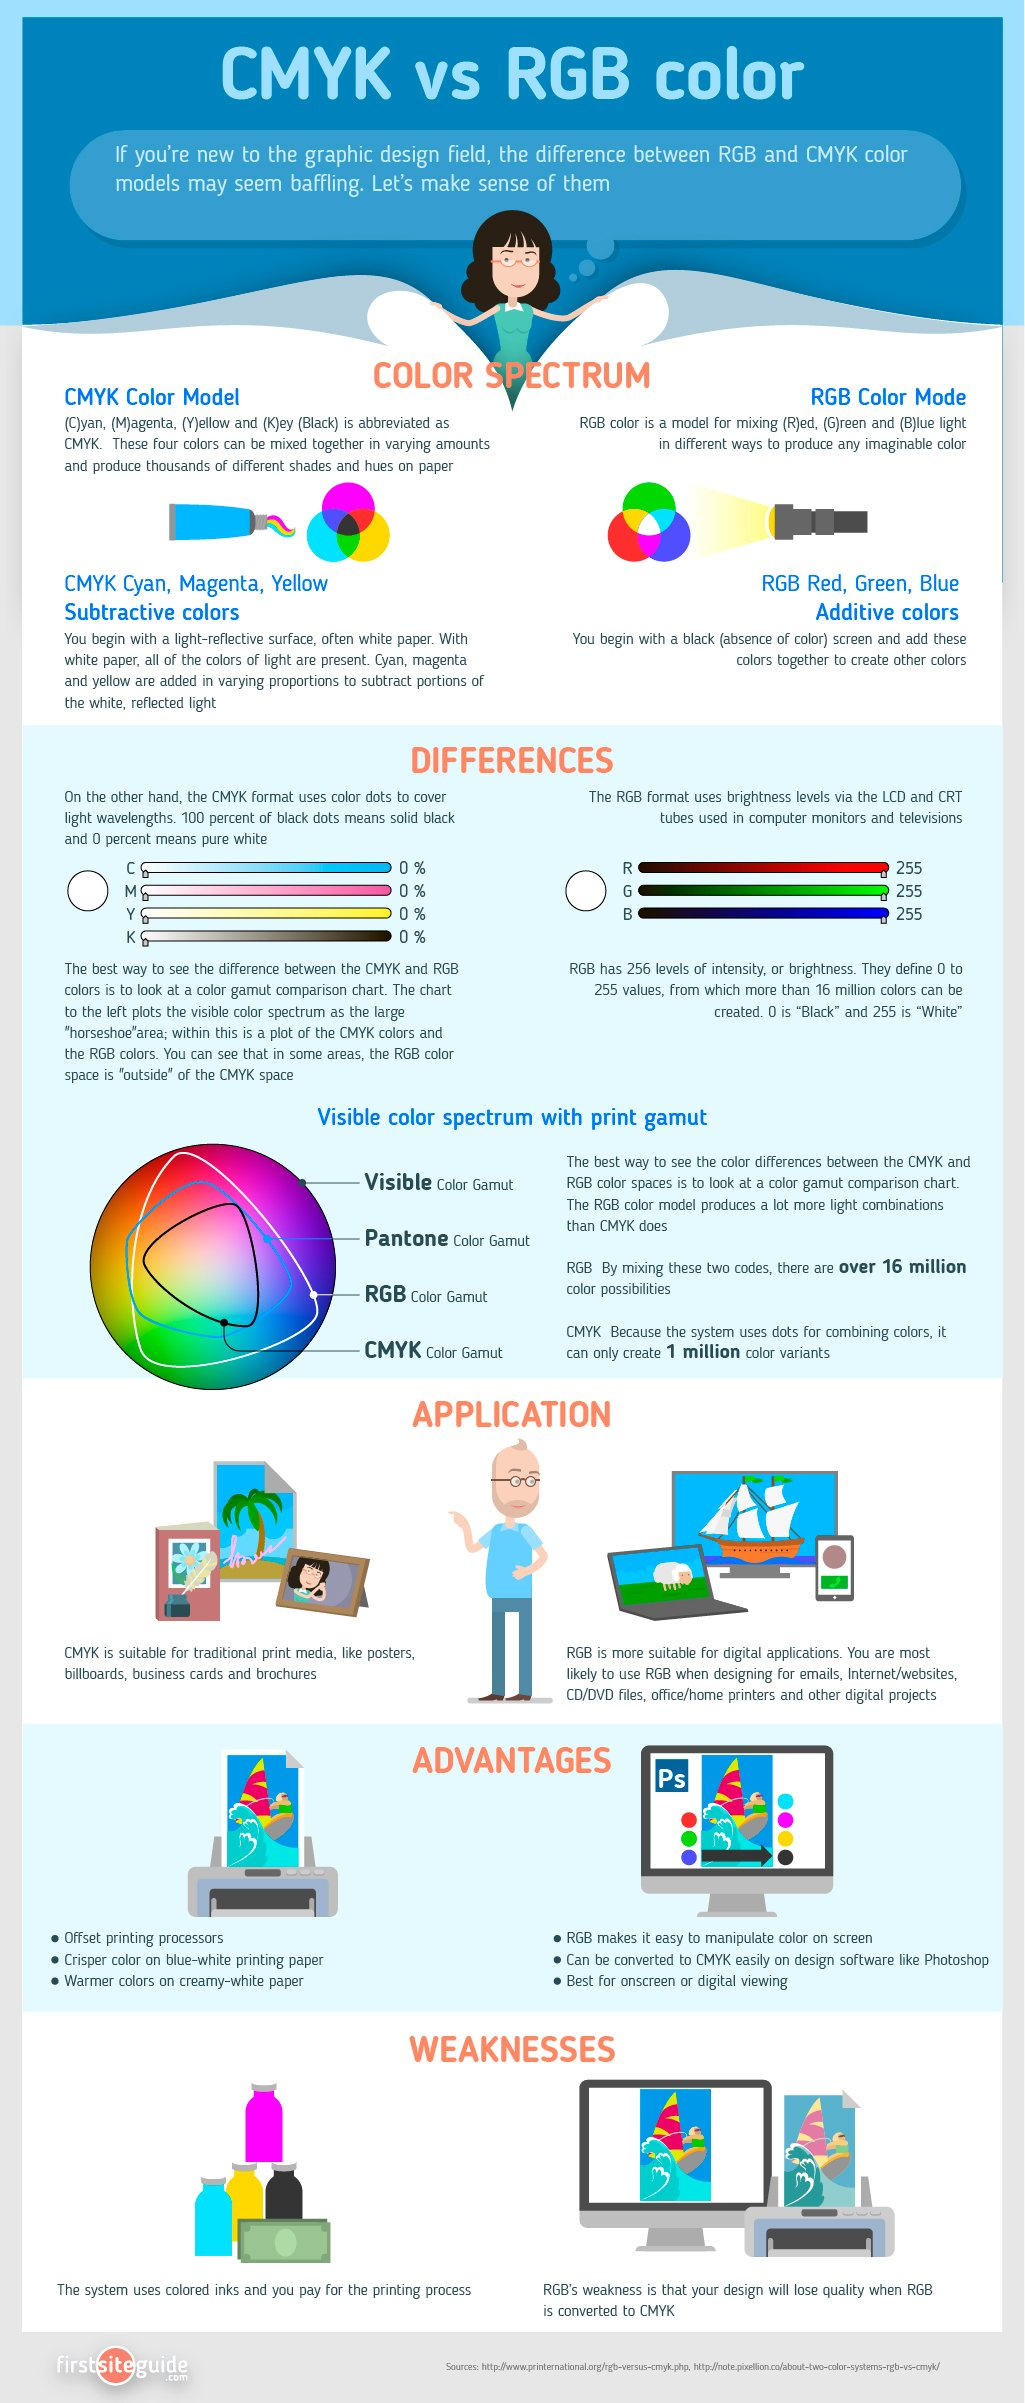 cmyk vs rgb cheat sheet